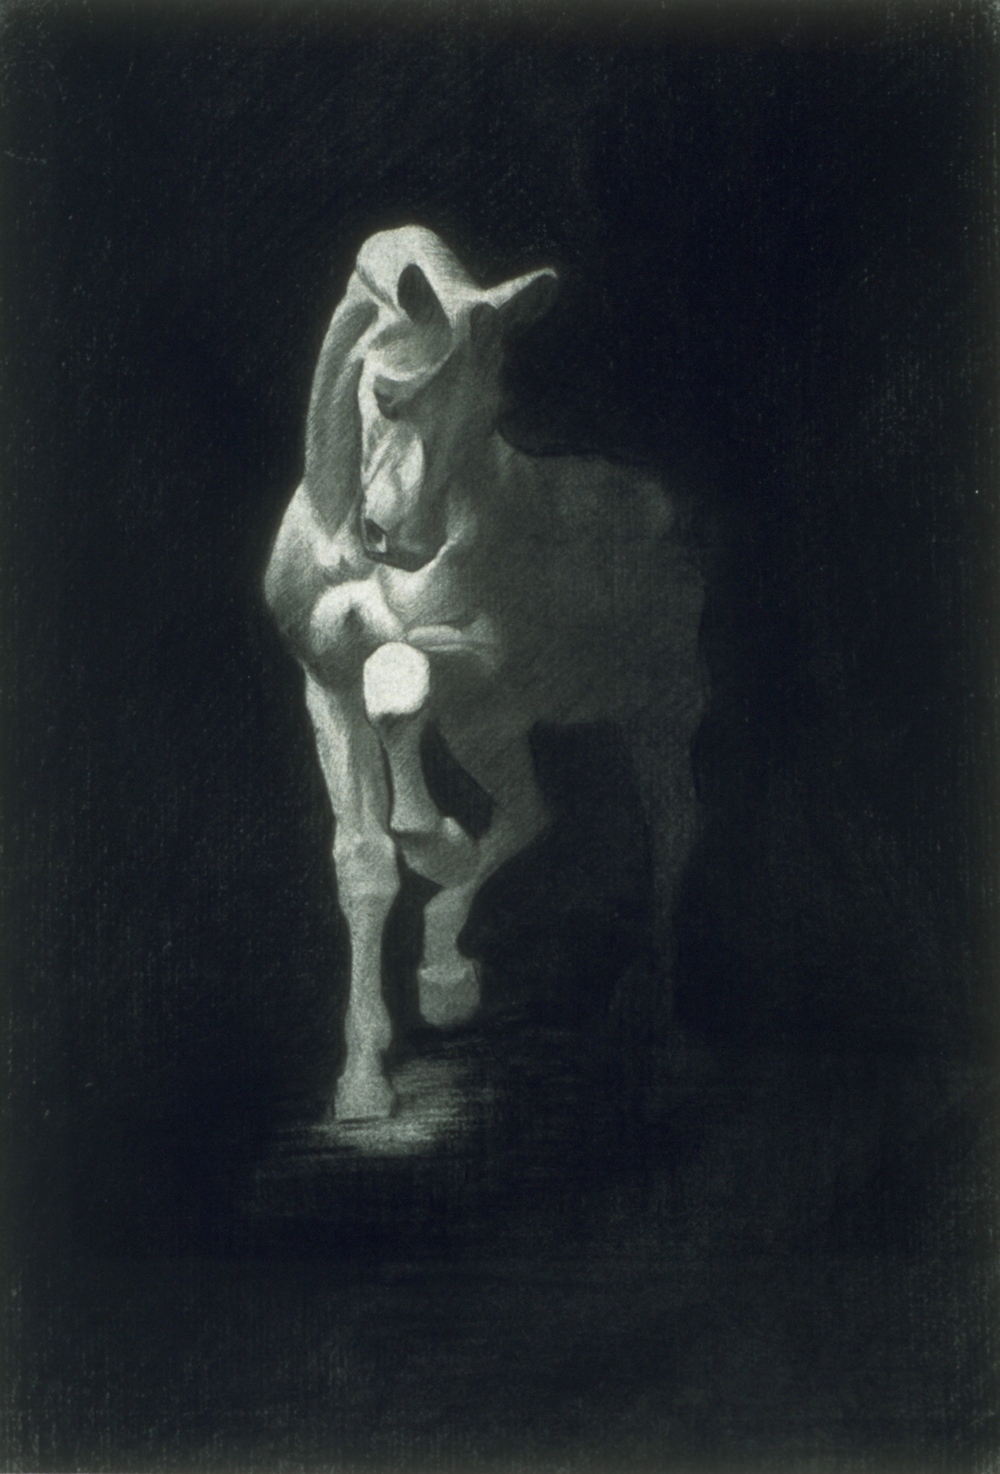 Horse, cast drawing